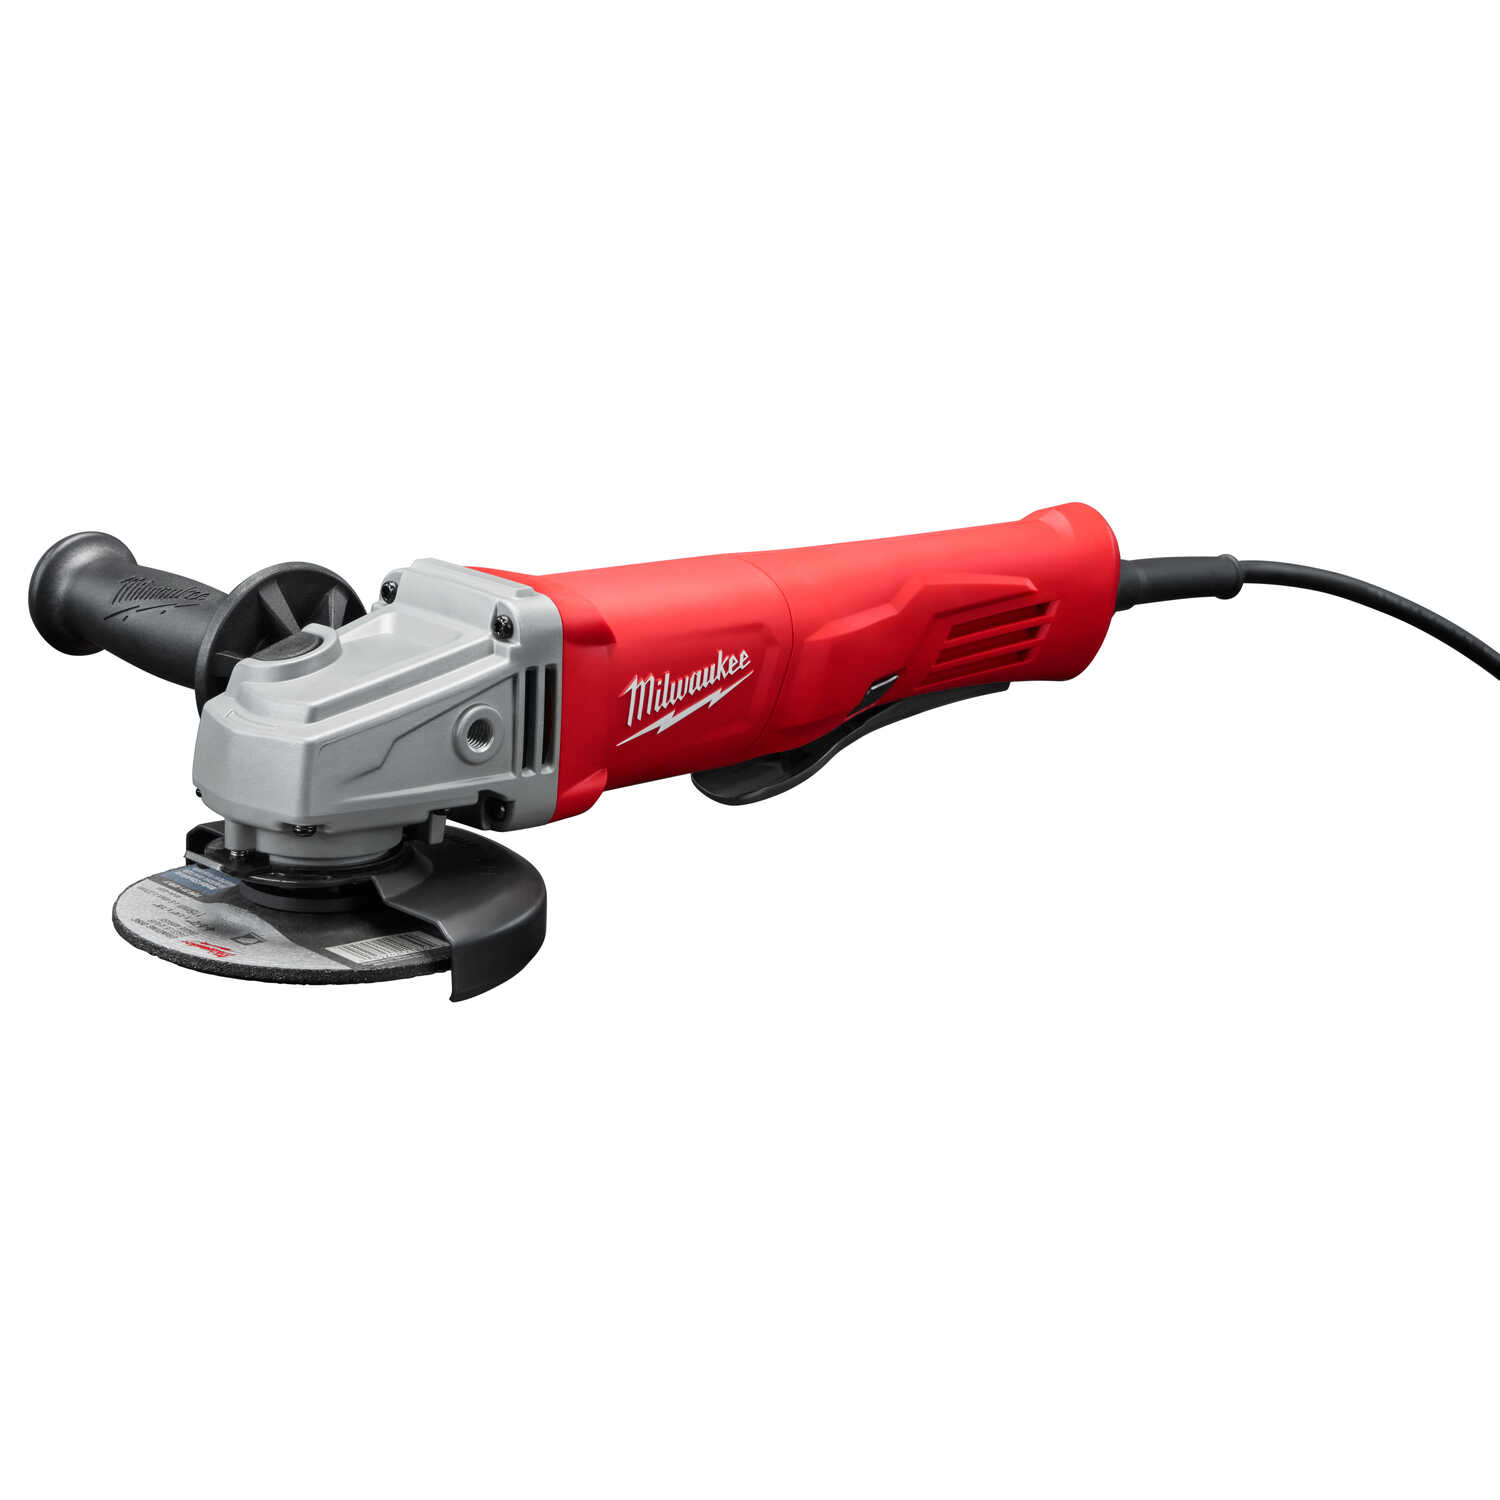 Milwaukee  4-1/2 in. 11 amps Corded  Small Angle Grinder with Lock-On  11000 rpm